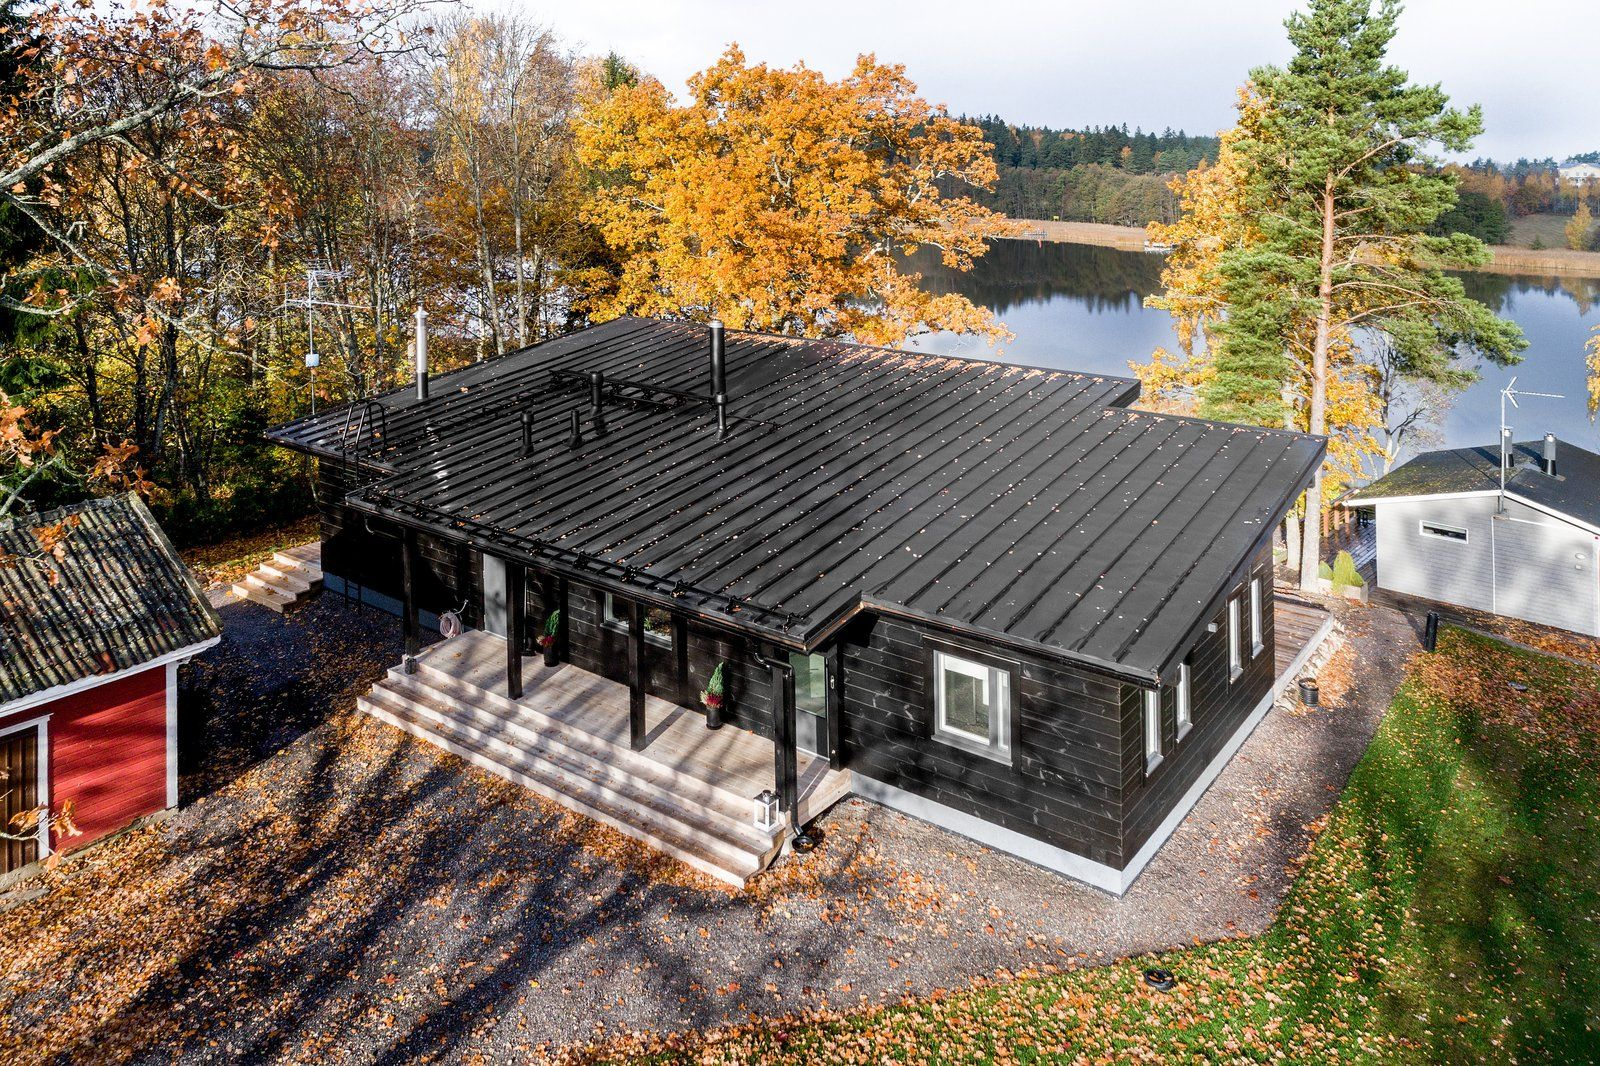 Log Cabin Kit Homes From Finland Modern Log Cabins Cabin Kit Homes Log Cabin Homes